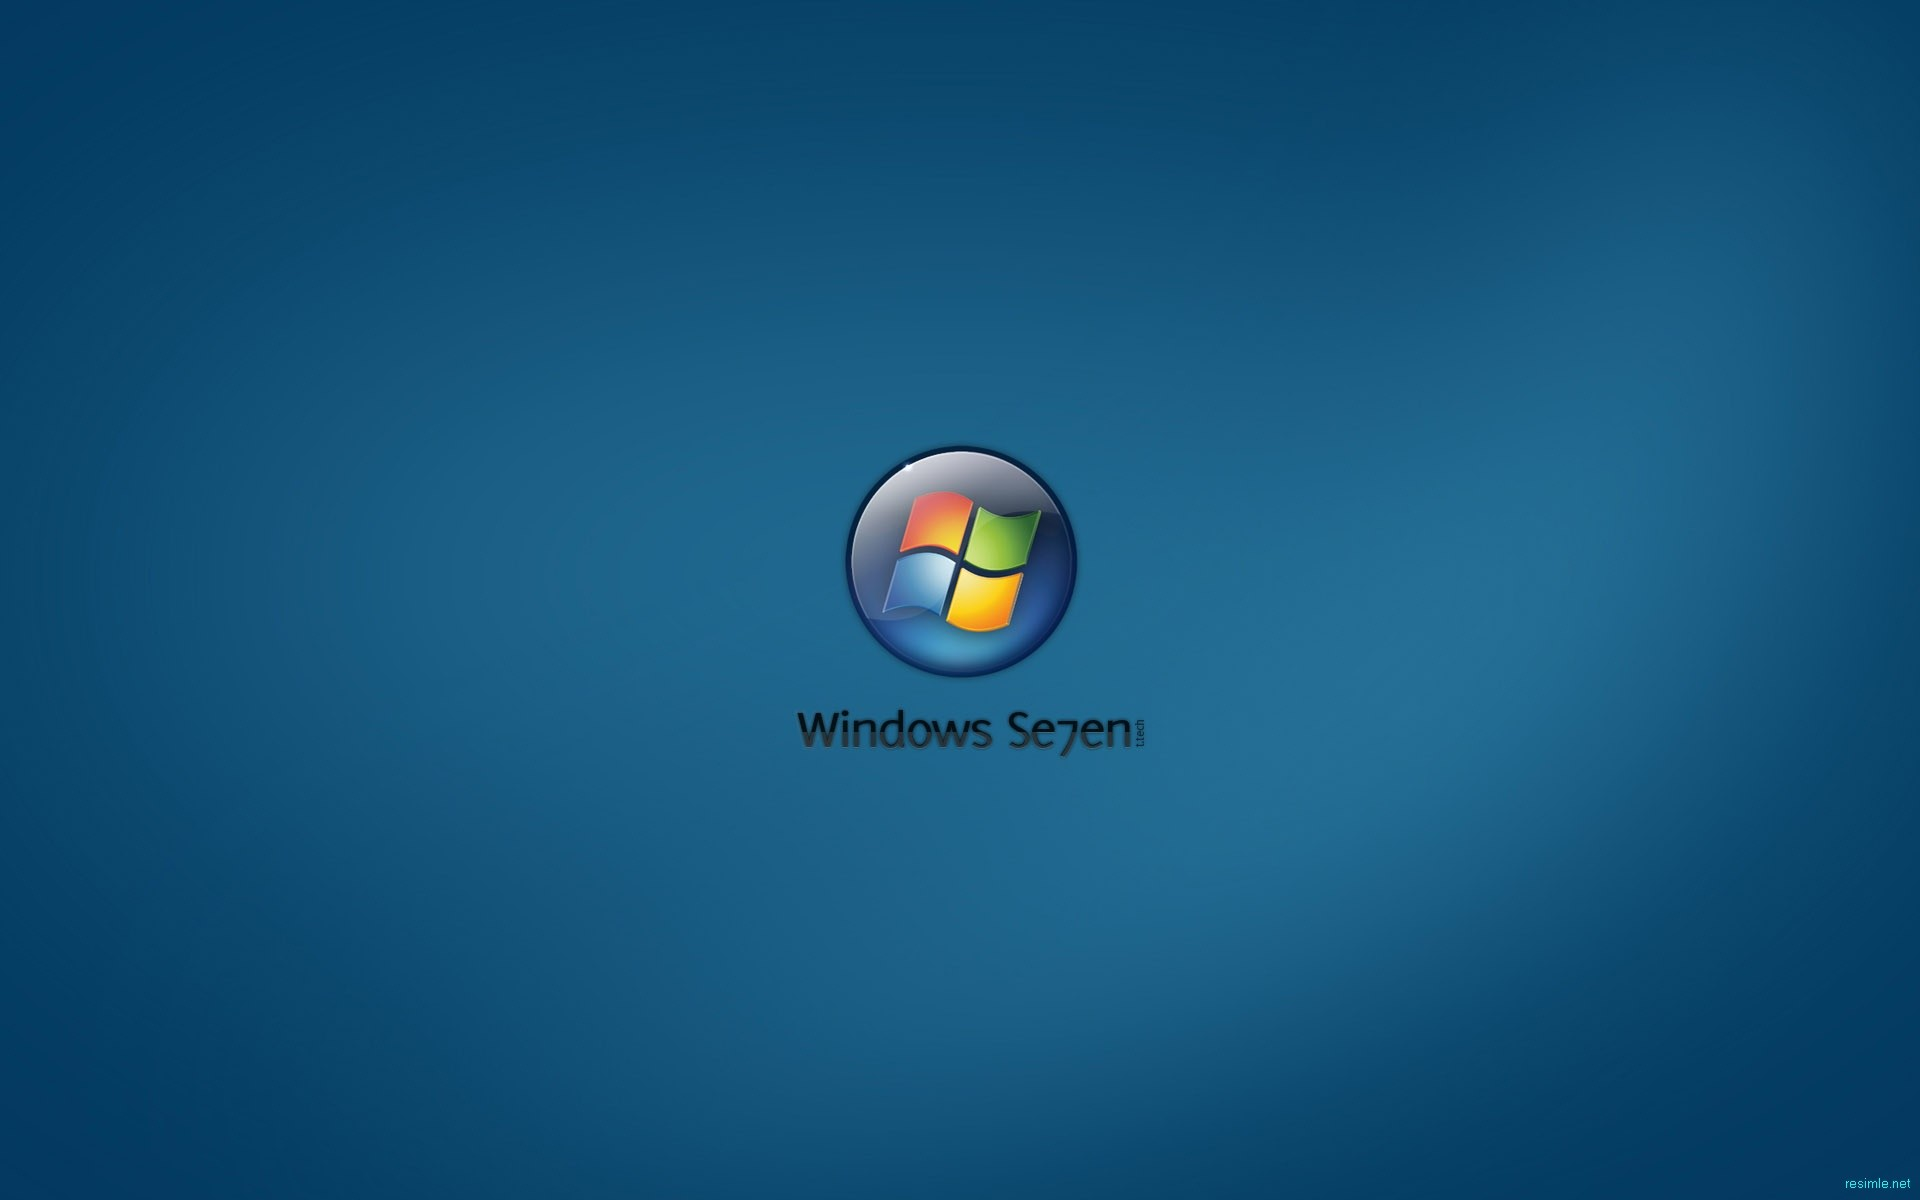 Windows 7 Official Wallpapers ·①